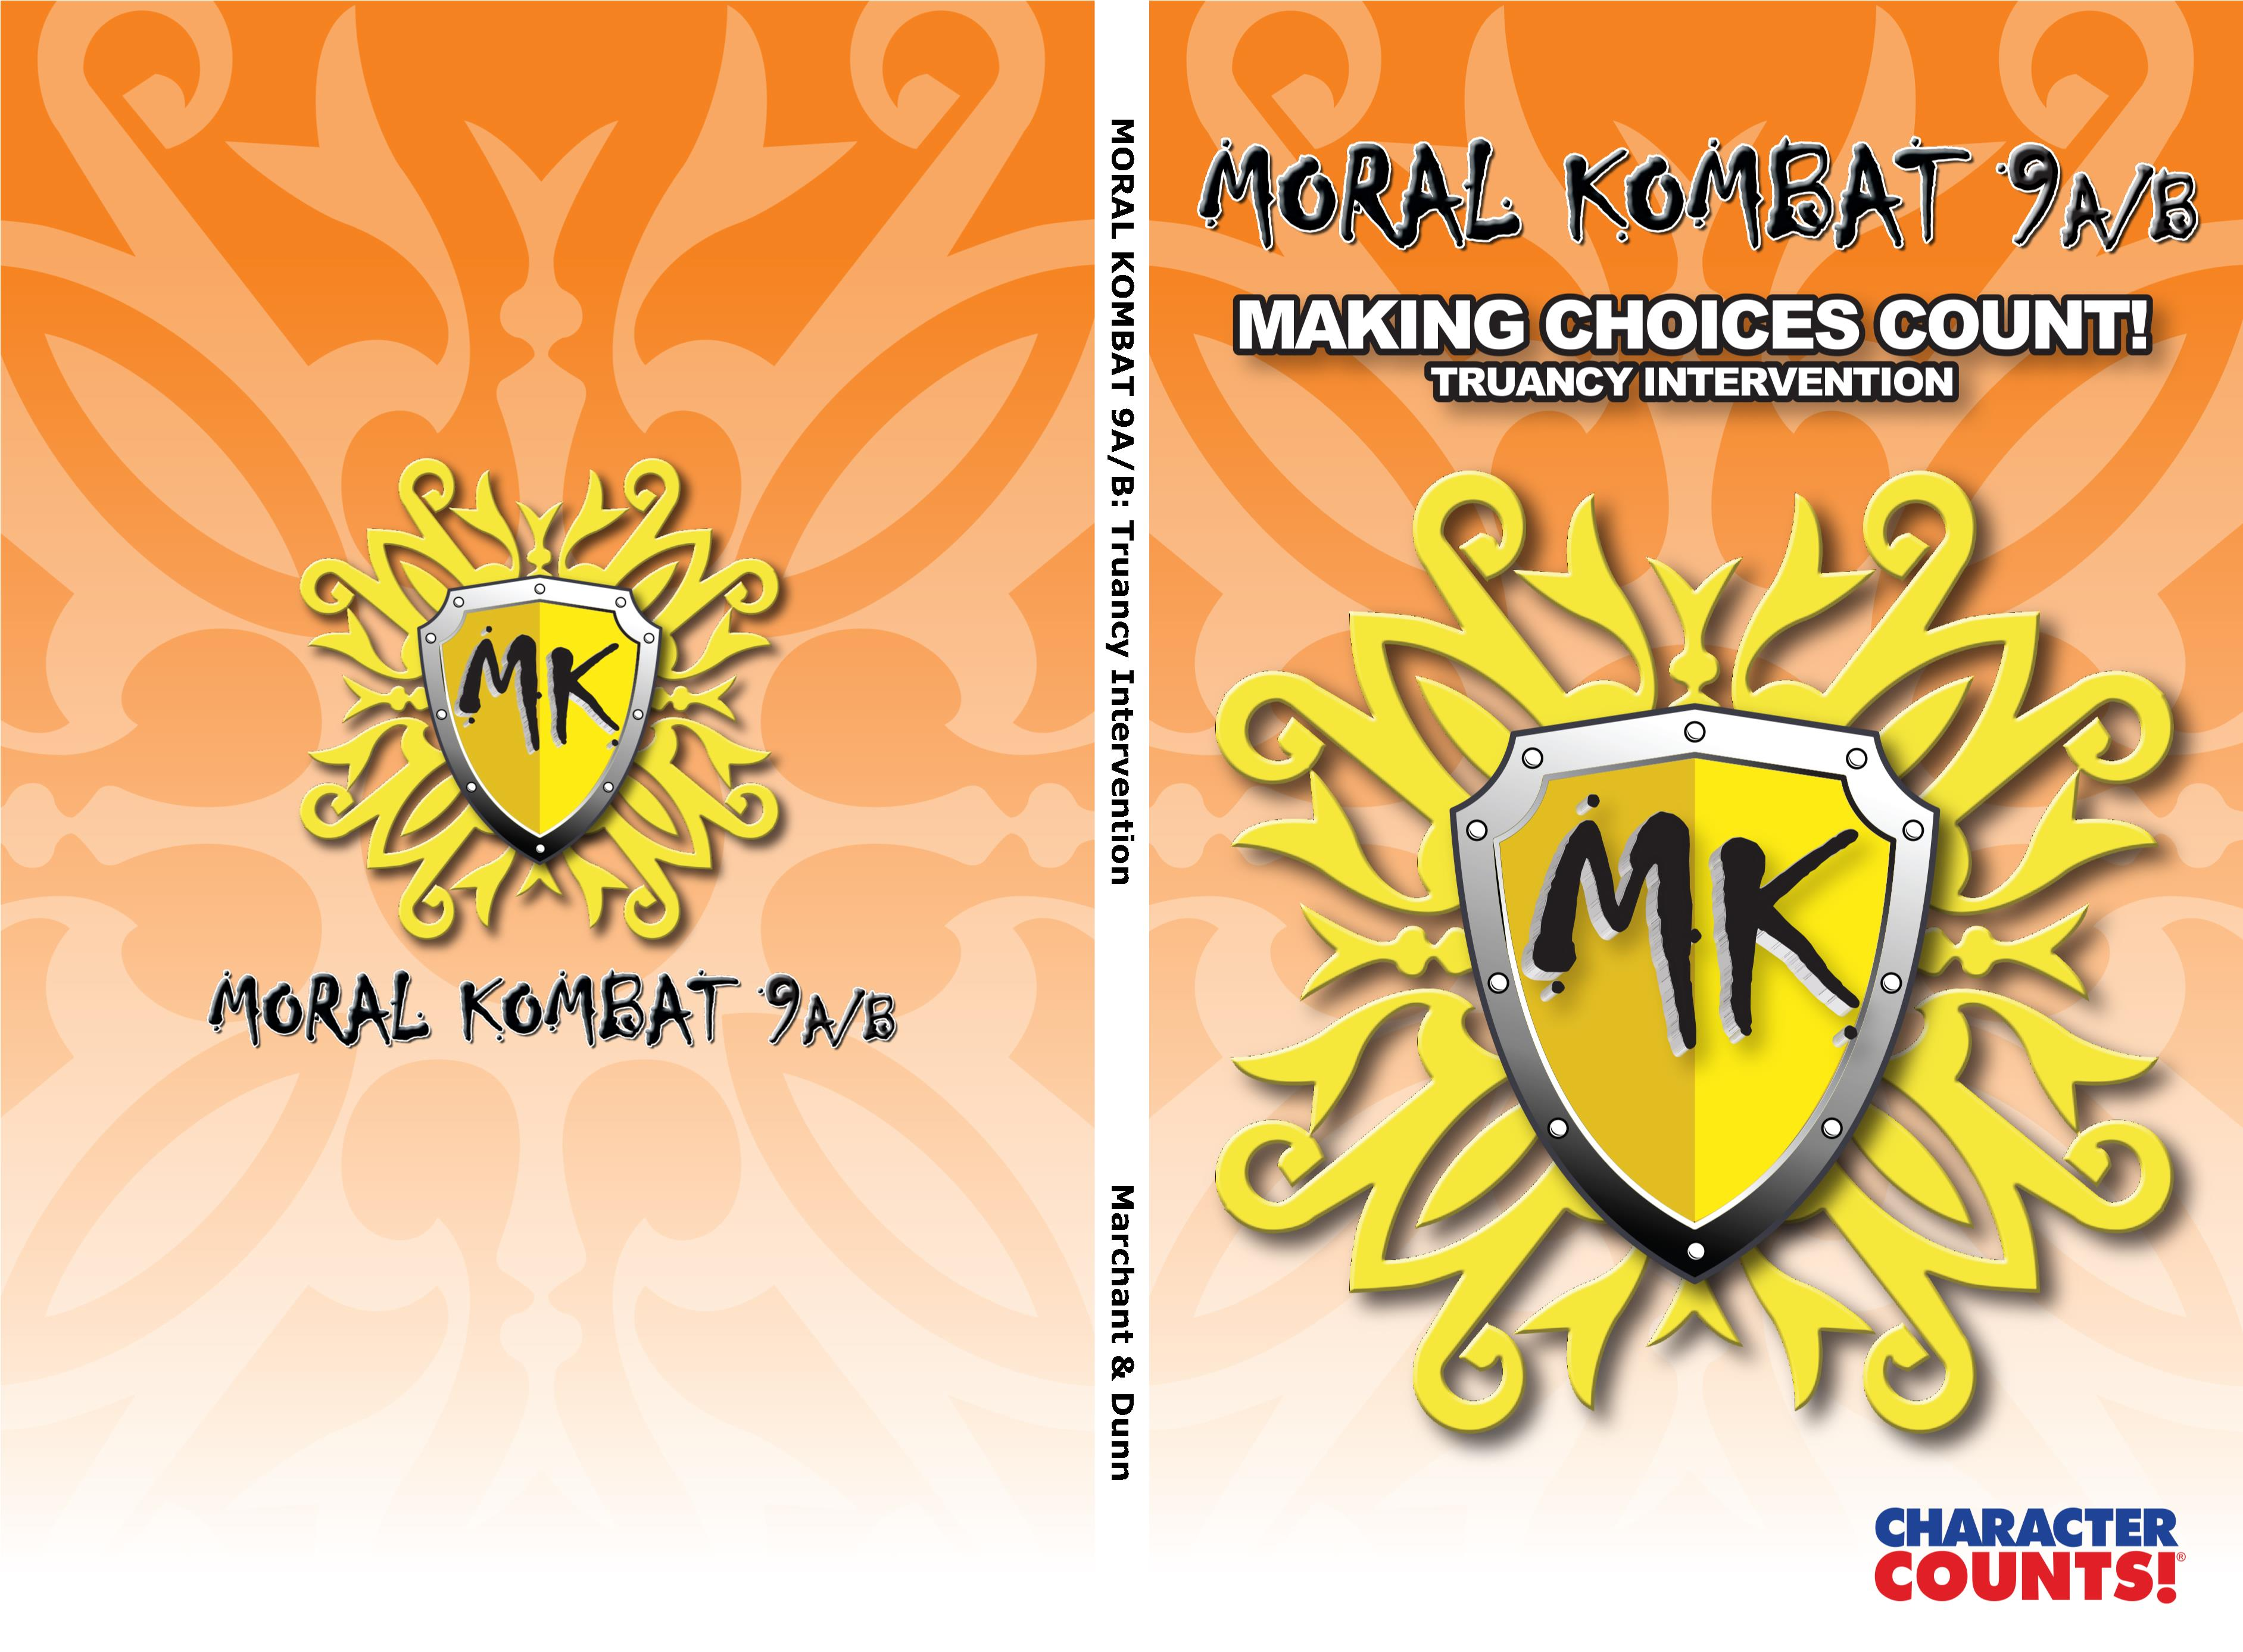 MORAL KOMBAT 9A/B: Truancy Intervention - Making Choices Count! cover image